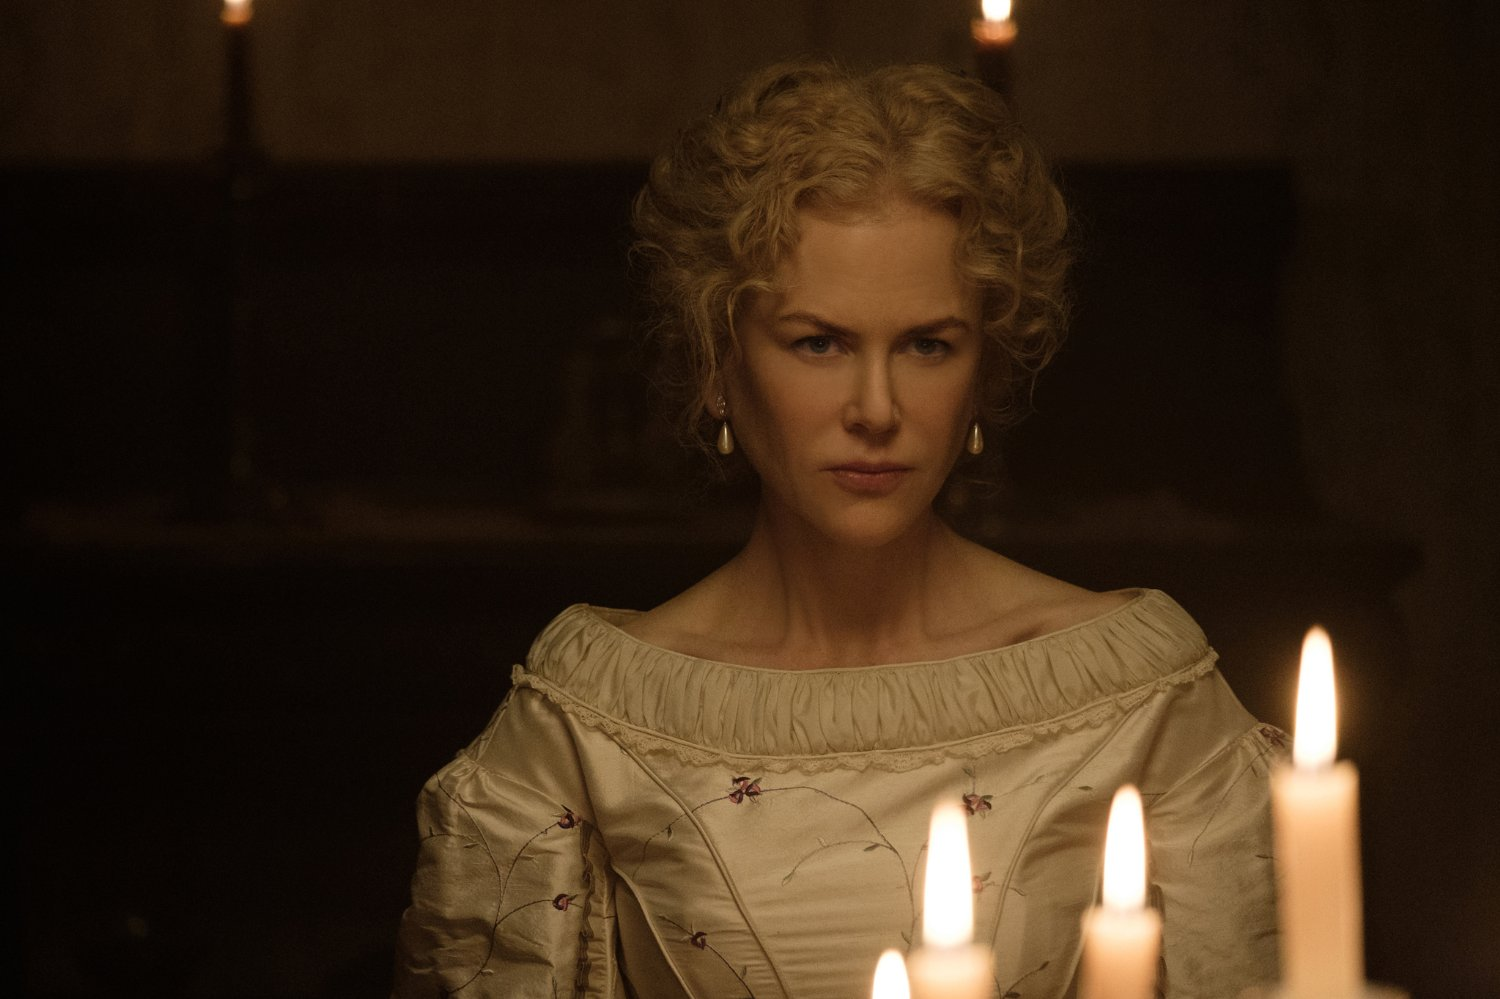 Things get bleak for Colin Farrell in haunting first trailer for Sofia Coppola's The Beguiled